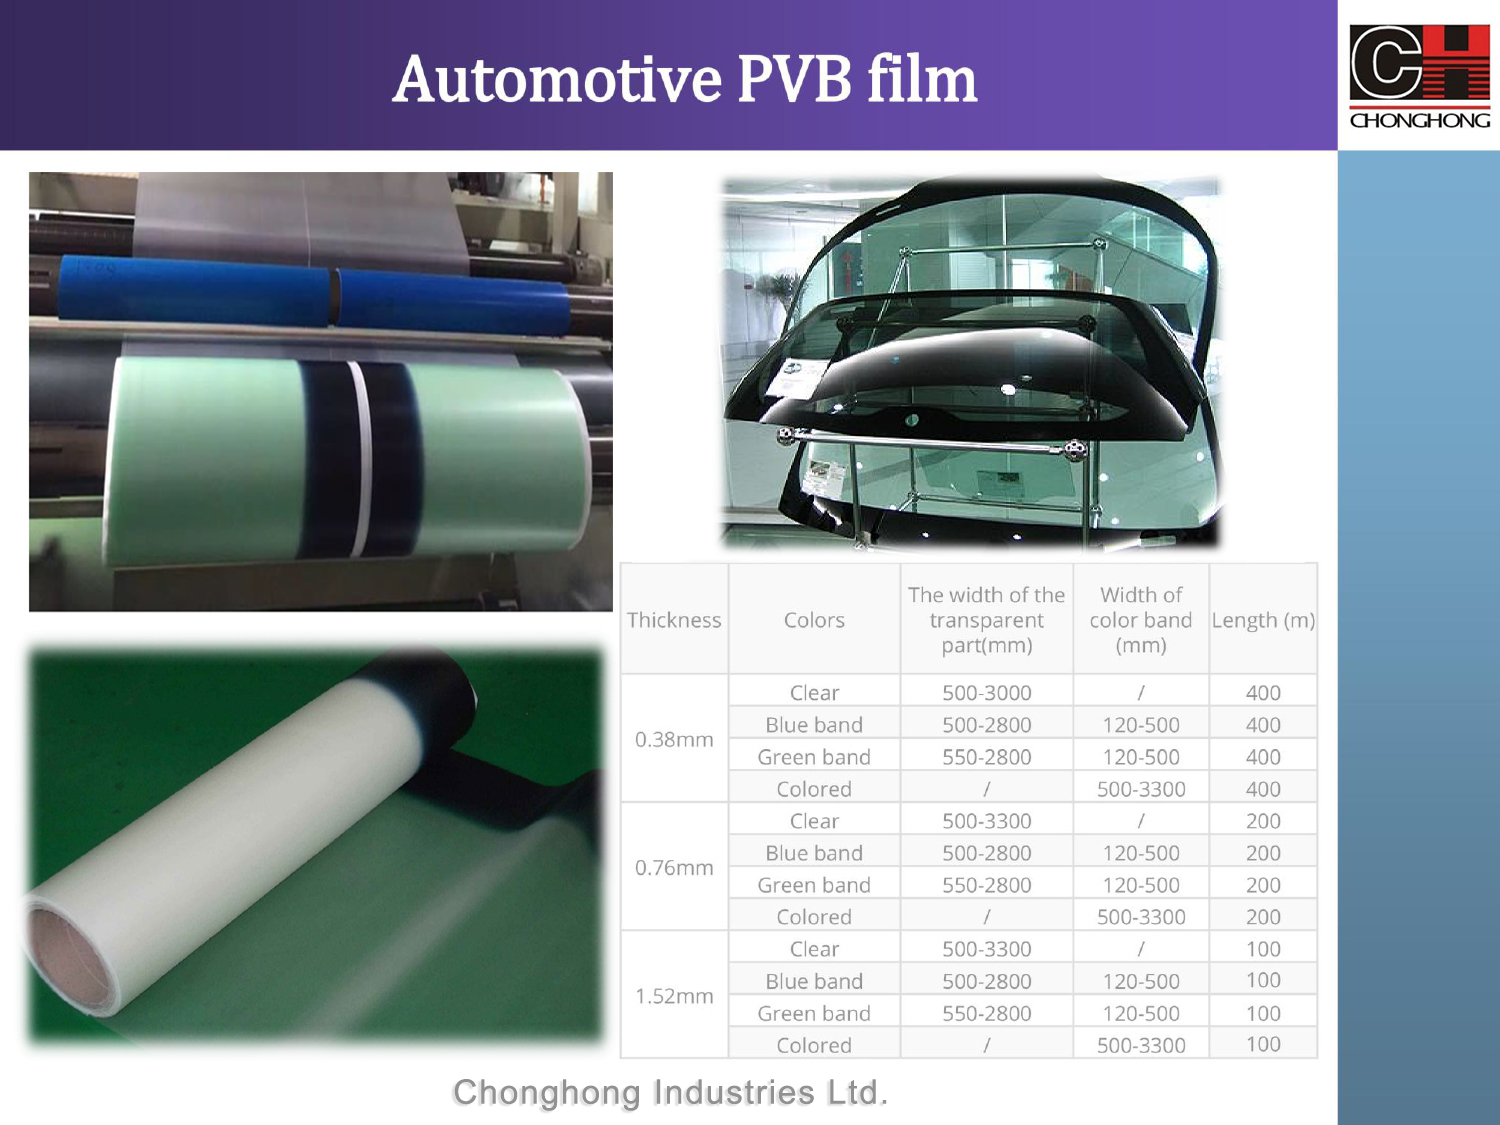 PVB-Folien (Hightech-Industriematerial)